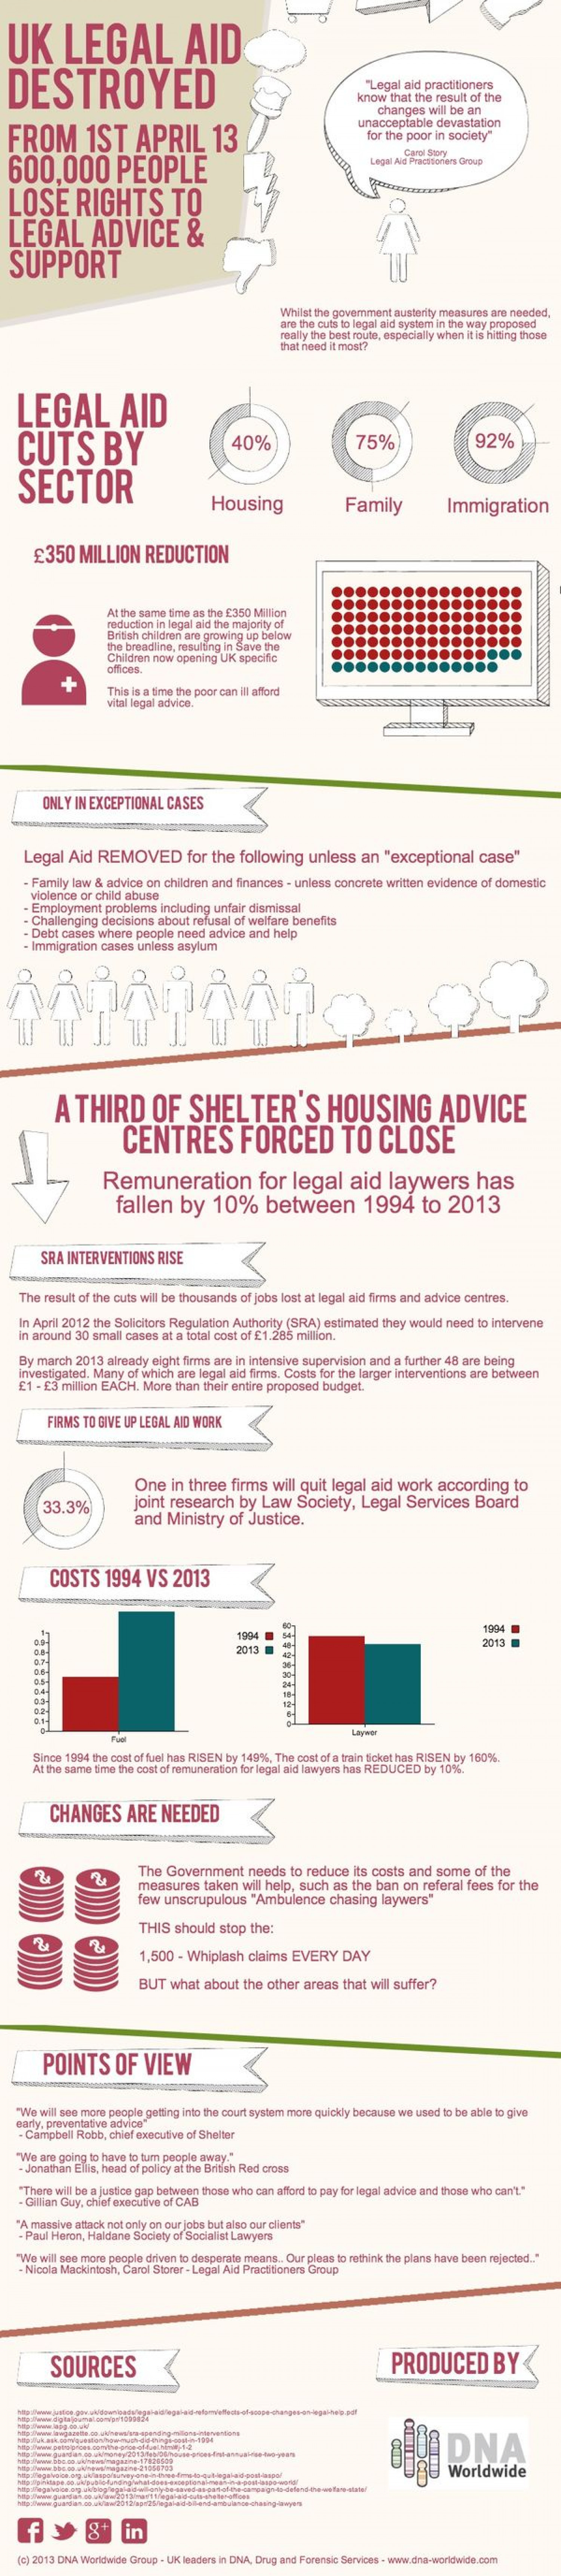 UK Legal Aid Cuts from the 1st April 2013 [Infographic] Infographic